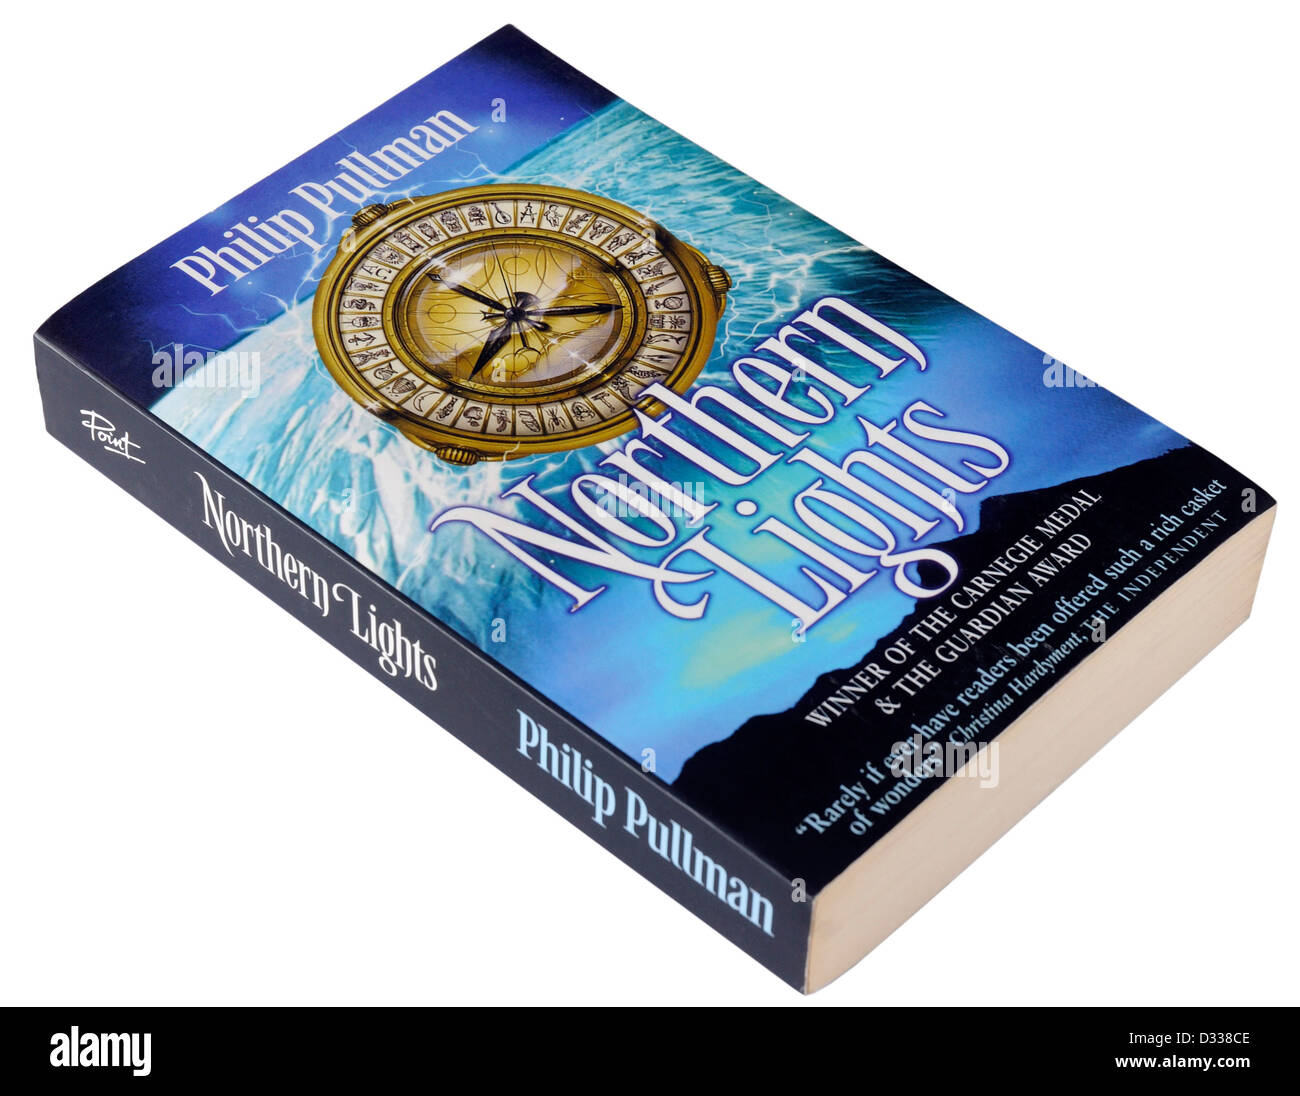 The Northern Lights By Philip Pullman   Stock Image